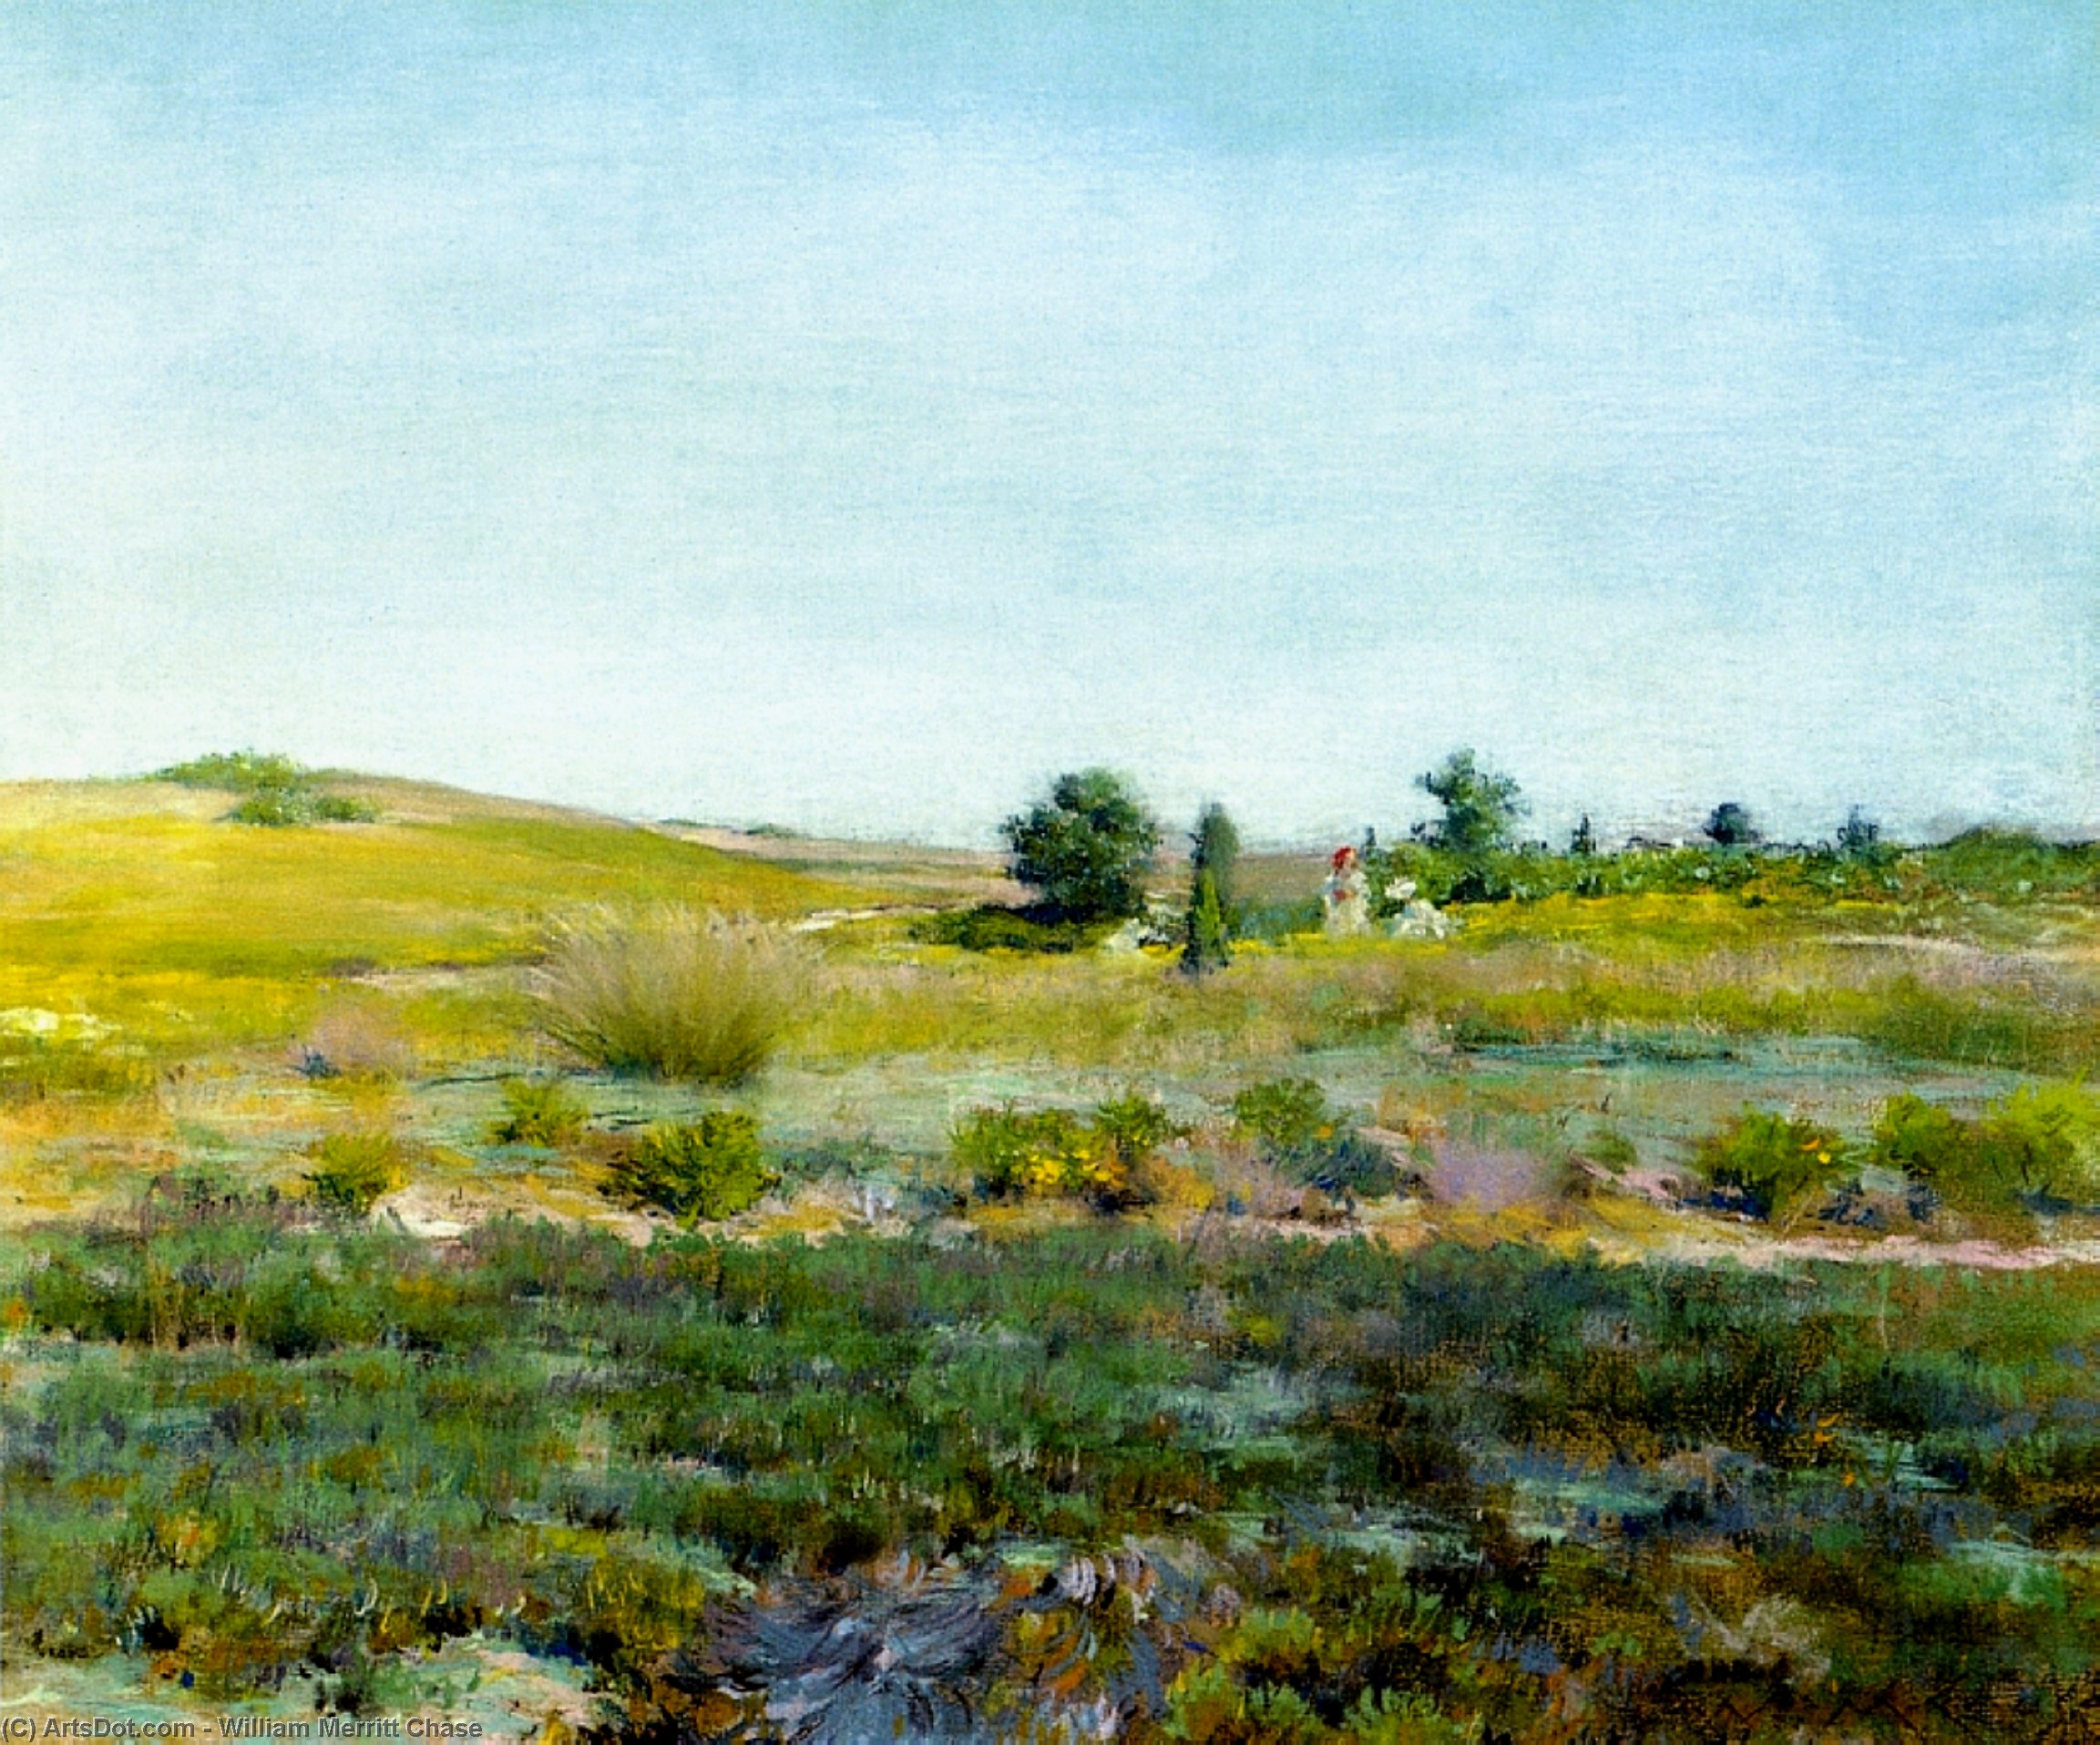 Shinnecock Colinas , Estival, en colores pastel de William Merritt Chase (1849-1916, United States)